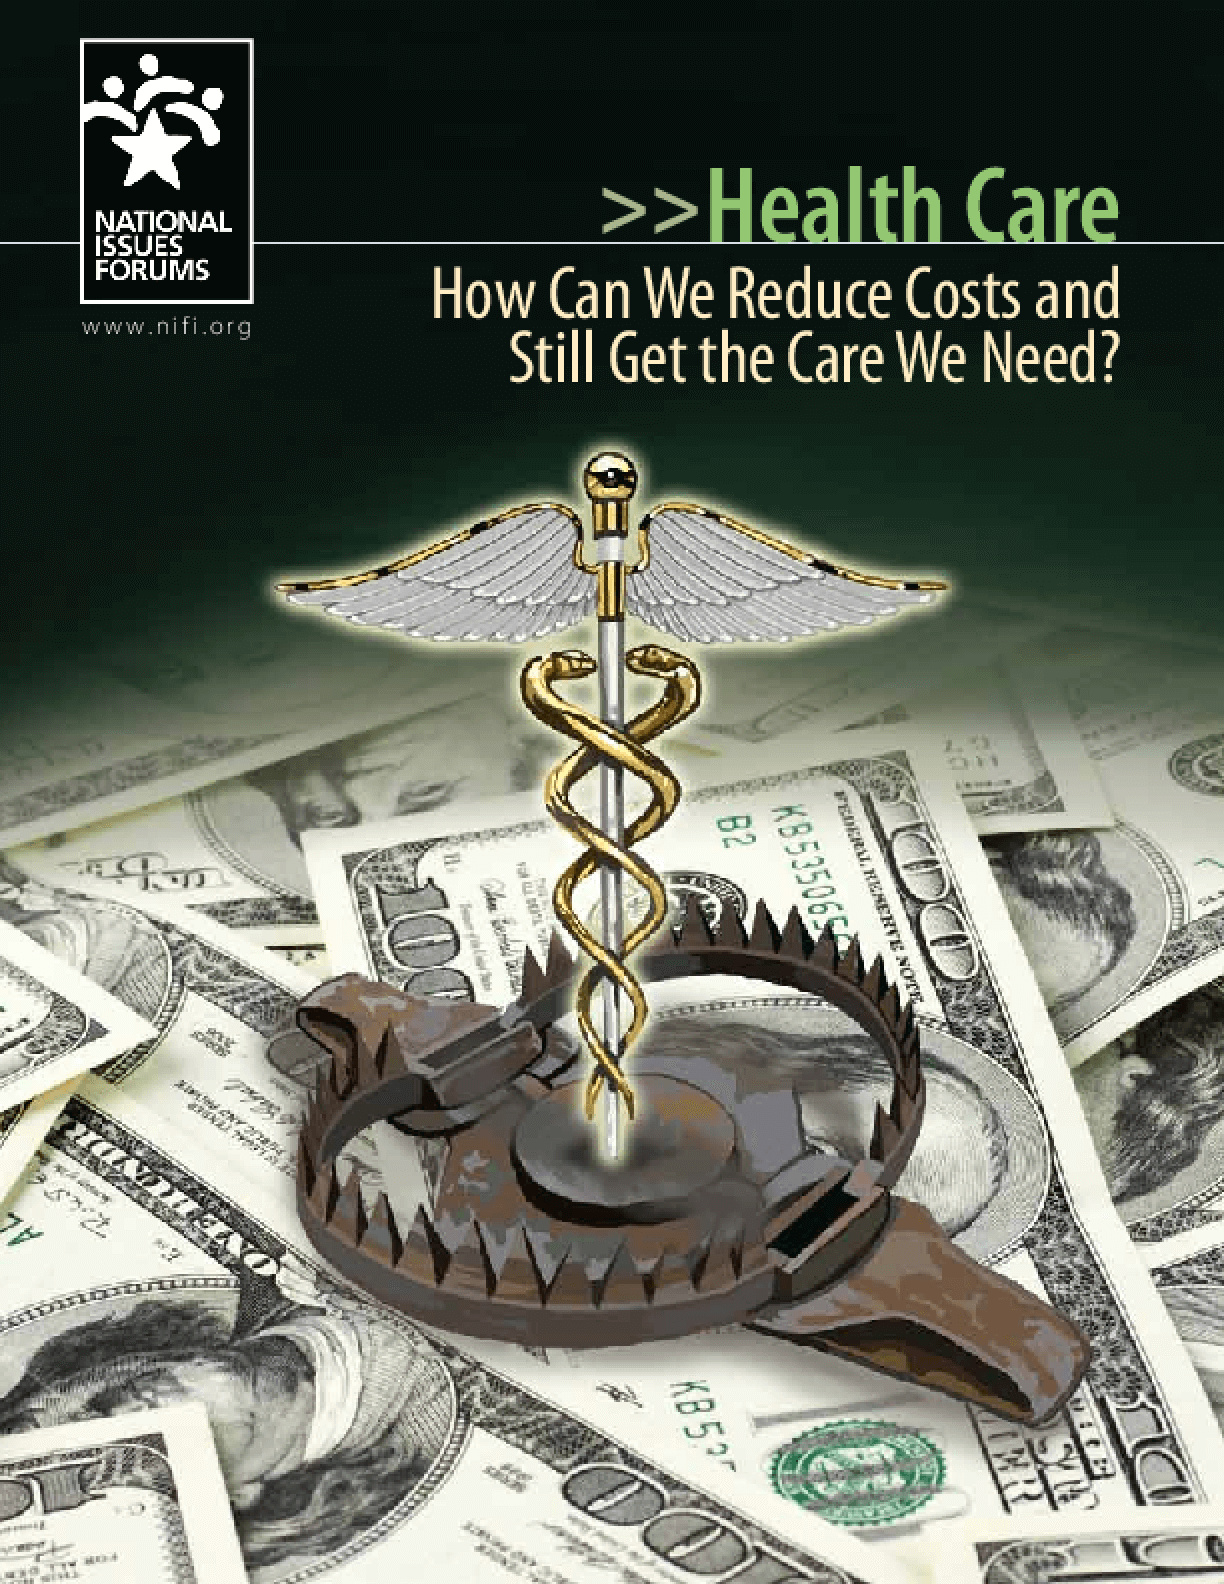 Health Care: How Can We Reduce Costs and Still Get the Care We Need?